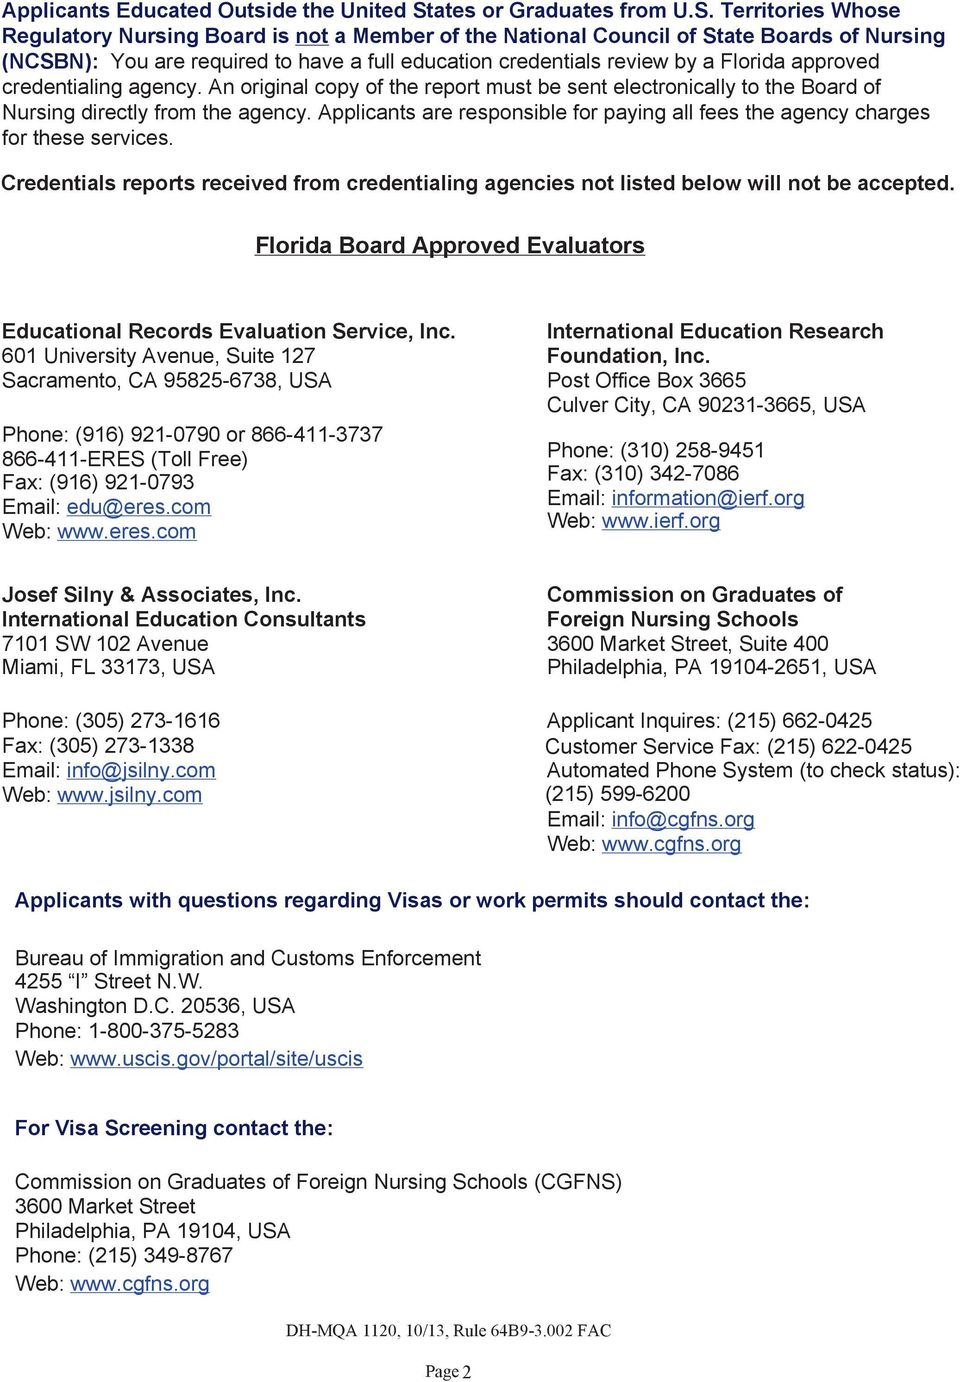 Territories Whose Regulatory Nursing Board is not a Member of the National Council of State Boards of Nursing (NCSBN): You are required to have a full education credentials review by a Florida